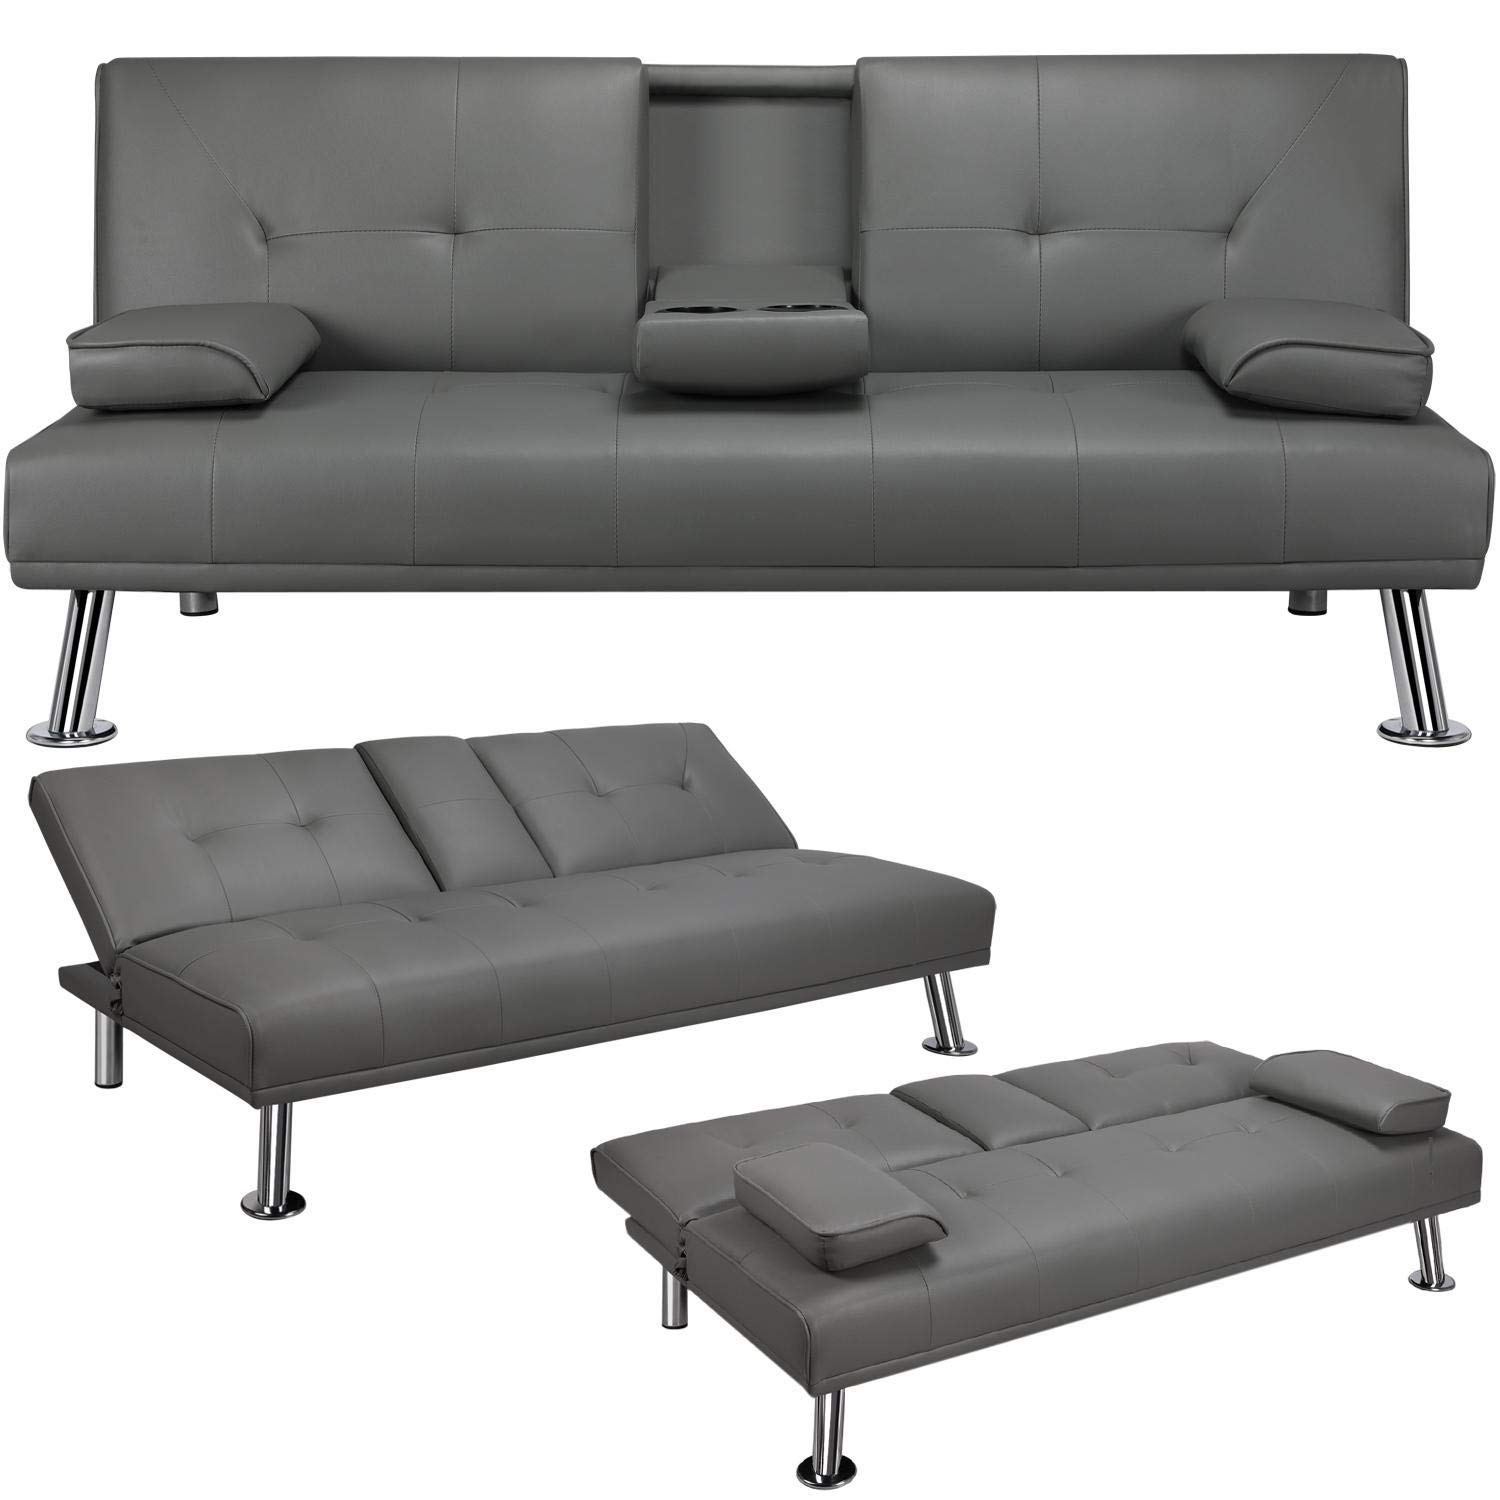 YAHEETECH Futon Sofa Bed Faux Leather Futon Couch Sleeper Sofa Convertible Sofa Couch Bed with Cup Holders and Armrest Gray